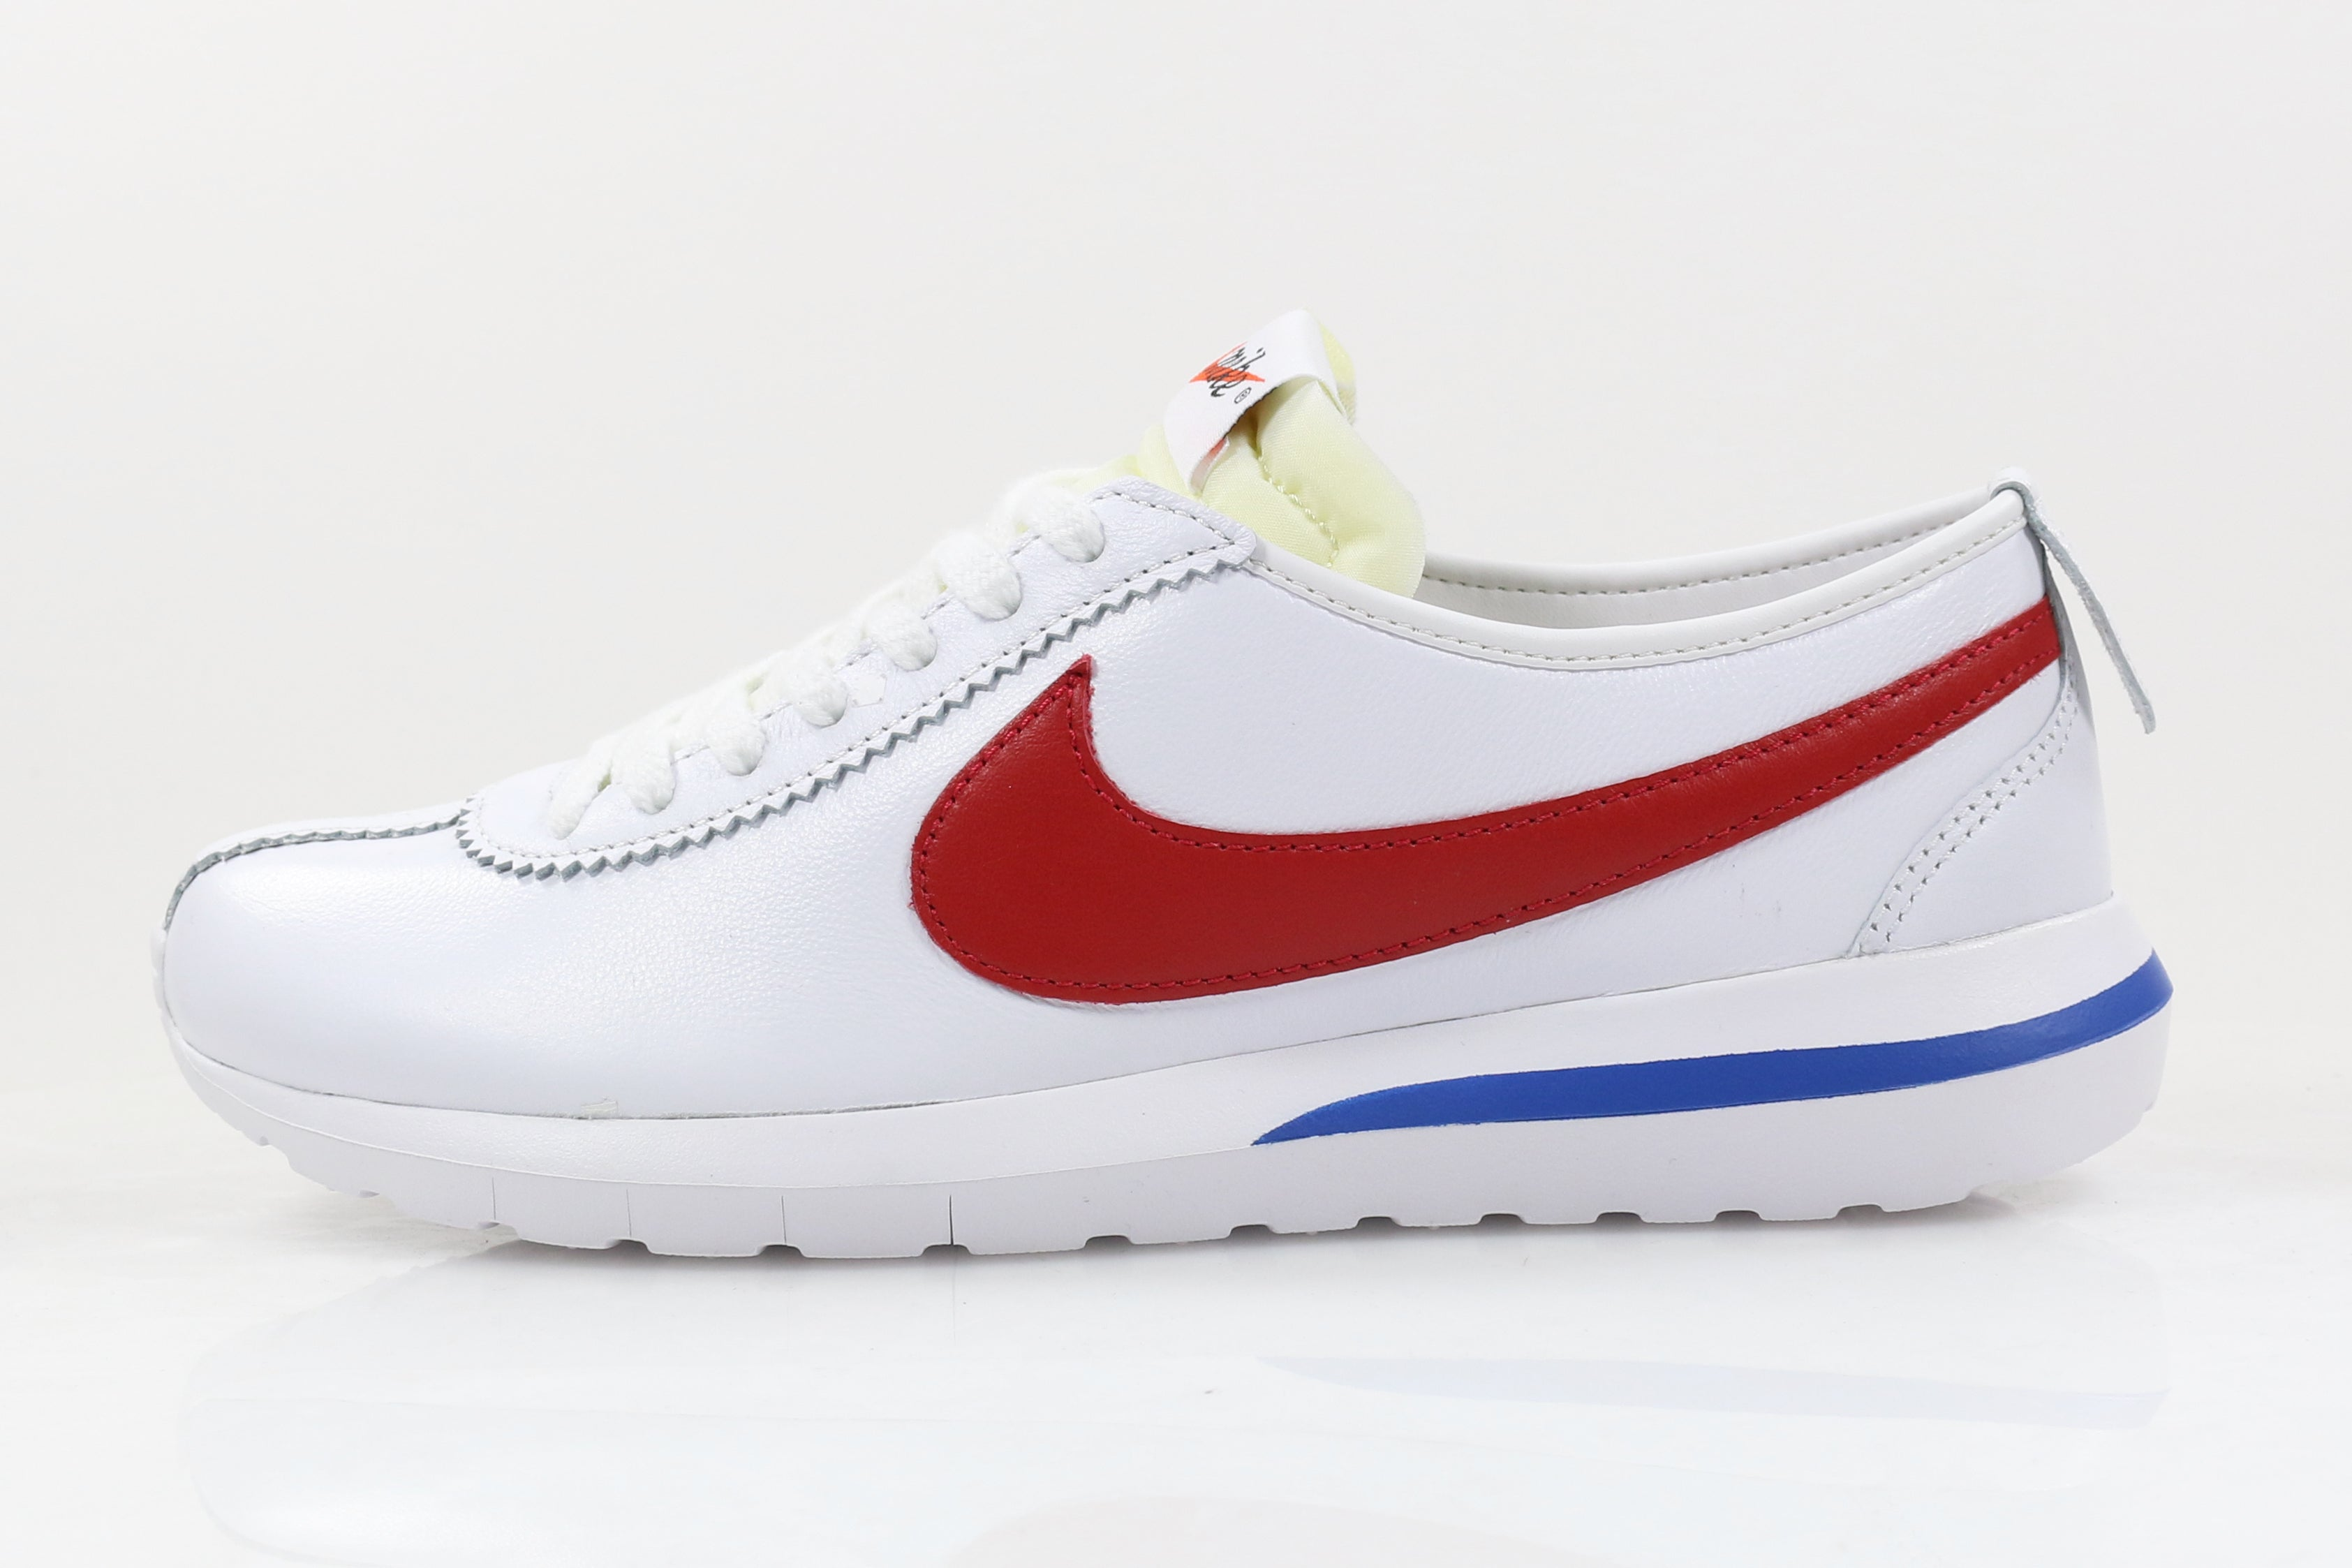 separation shoes 0a480 380a4 Nike Roshe Cortez SP – Hanon